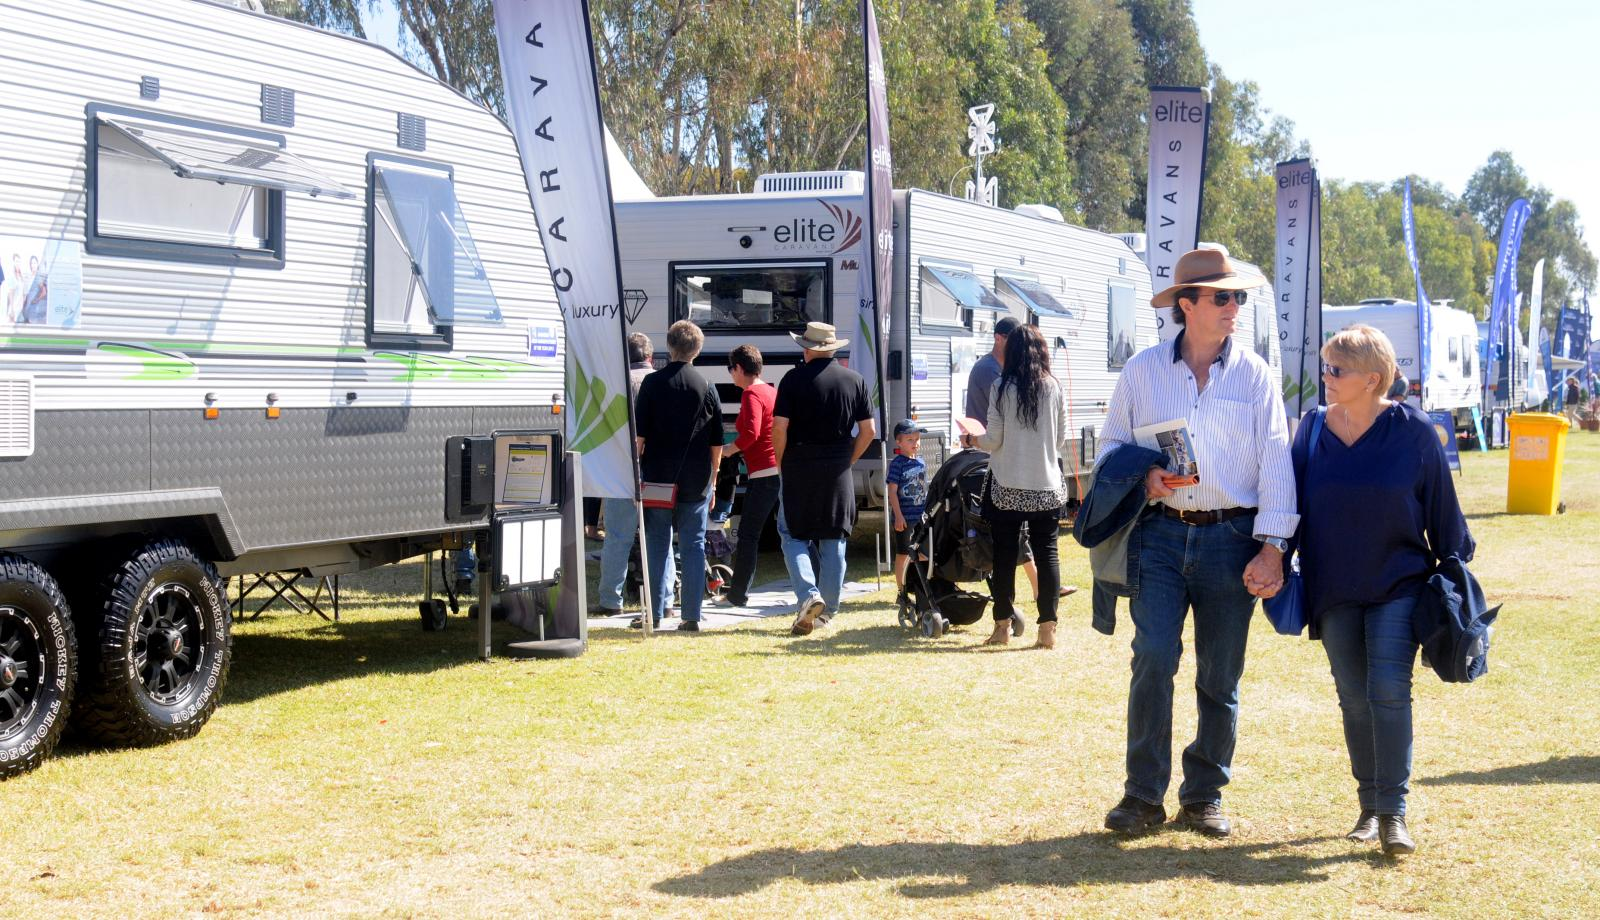 The Echuca Great Outdoor and 4x4 Expo